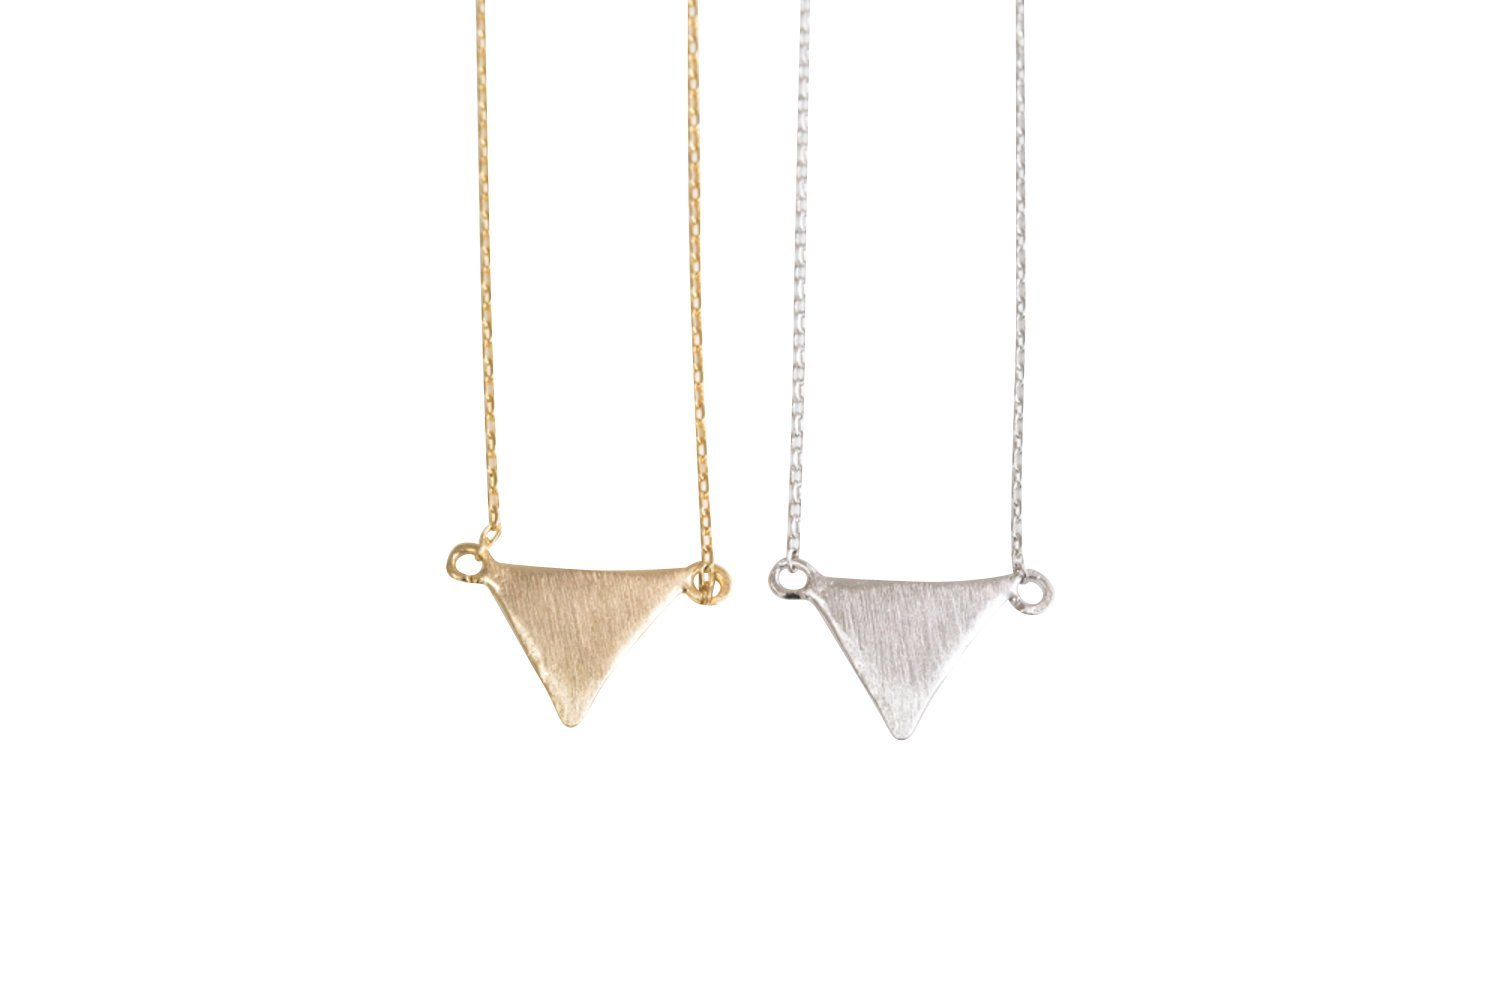 Upside Down Triangle Necklace-ep , triangle jewelry, triangle necklace, triangle shape jewelry, triangle shape necklace, triangle jewellry, geometric